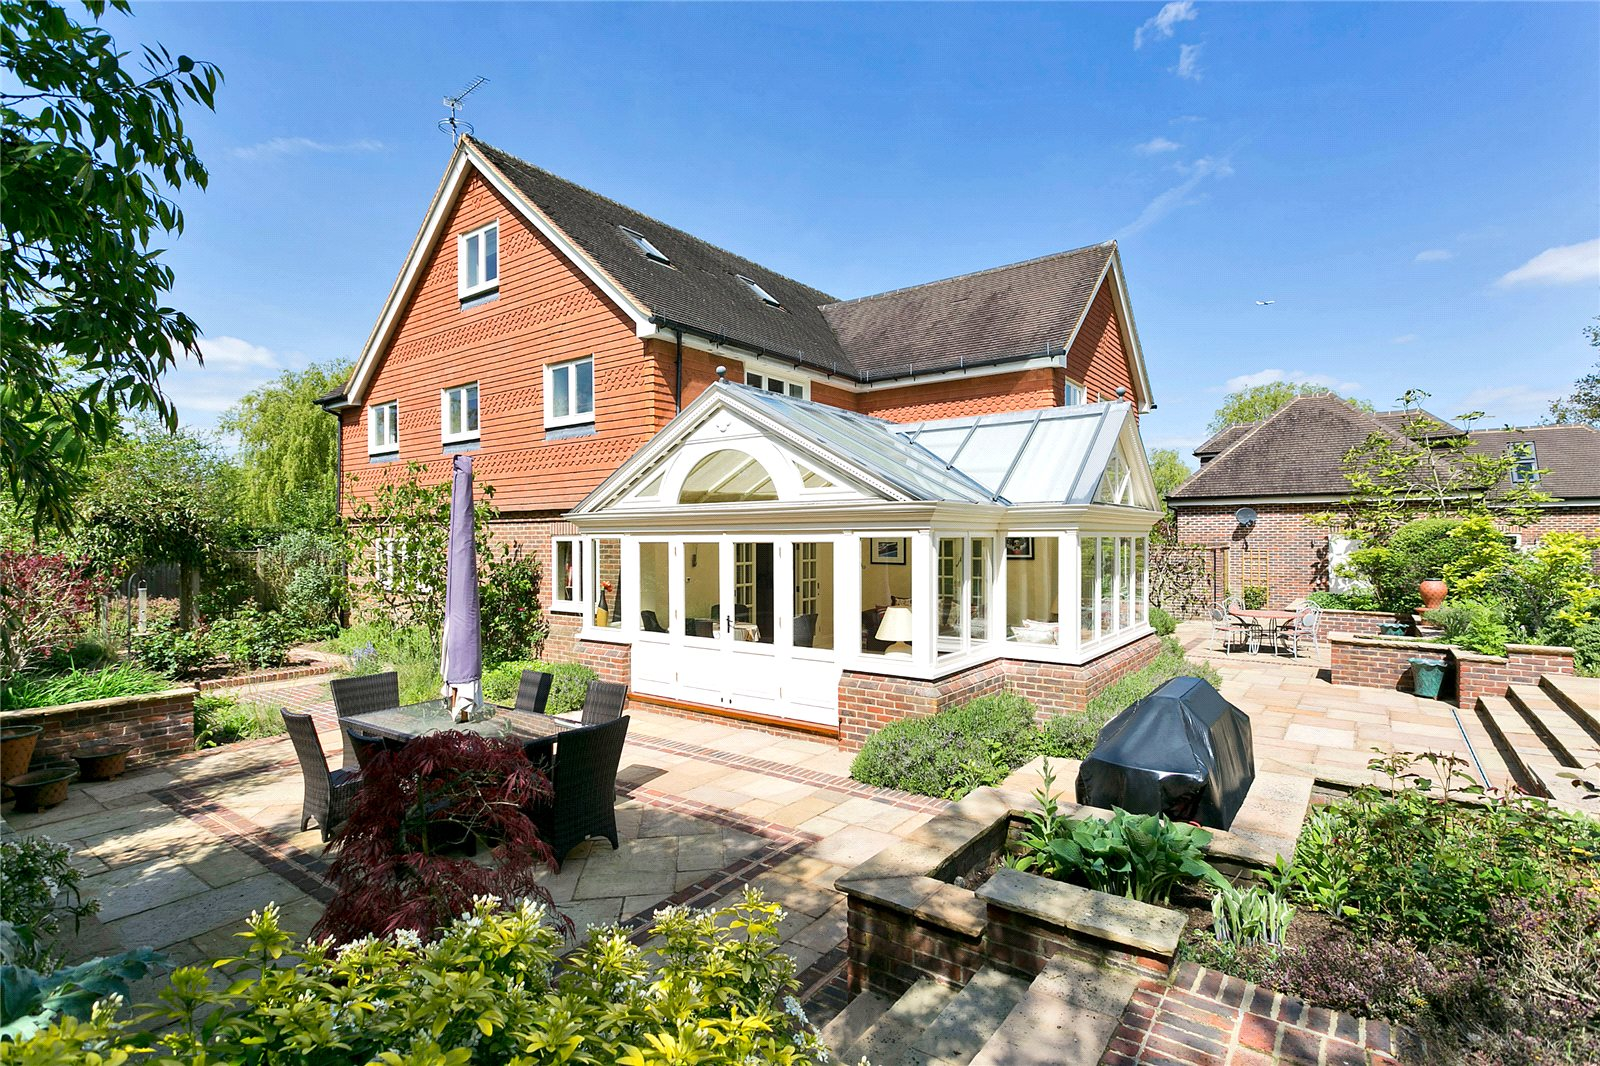 Single Family Home for Sale at Winkfield Lane, Winkfield, Windsor, Berkshire, SL4 Windsor, England